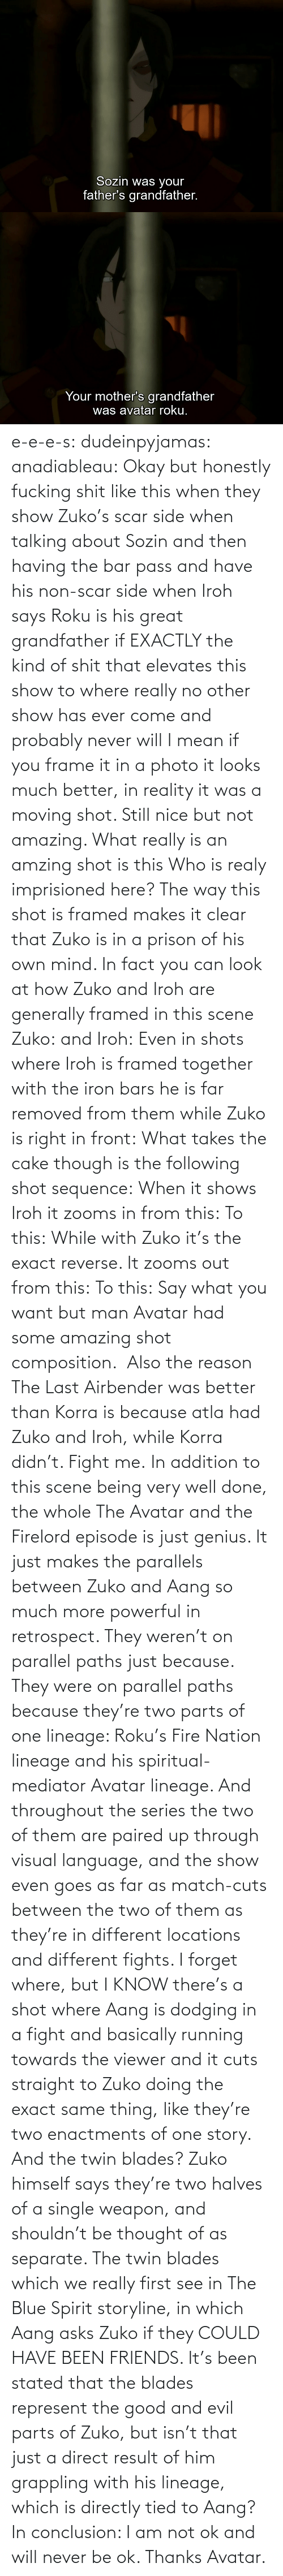 better: e-e-e-s: dudeinpyjamas:   anadiableau: Okay but honestly fucking shit like this when they show Zuko's scar side when talking about Sozin and then having the bar pass and have his non-scar side when Iroh says Roku is his great grandfather if EXACTLY the kind of shit that elevates this show to where really no other show has ever come and probably never will I mean if you frame it in a photo it looks much better, in reality it was a moving shot. Still nice but not amazing. What really is an amzing shot is this Who is realy imprisioned here? The way this shot is framed makes it clear that Zuko is in a prison of his own mind. In fact you can look at how Zuko and Iroh are generally framed in this scene Zuko: and Iroh: Even in shots where Iroh is framed together with the iron bars he is far removed from them while Zuko is right in front:  What takes the cake though is the following shot sequence: When it shows Iroh it zooms in from this: To this: While with Zuko it's the exact reverse. It zooms out from this: To this: Say what you want but man Avatar had some amazing shot composition.   Also the reason The Last Airbender was better than Korra is because atla had Zuko and Iroh, while Korra didn't. Fight me.    In addition to this scene being very well done, the whole The Avatar and the Firelord episode is just genius.  It just makes the parallels between Zuko and Aang so much more powerful in retrospect.  They weren't on parallel paths just because.  They were on parallel paths because they're two parts of one lineage: Roku's Fire Nation lineage and his spiritual-mediator Avatar lineage.  And throughout the series the two of them are paired up through visual language, and the show even goes as far as match-cuts between the two of them as they're in different locations and different fights.  I forget where, but I KNOW there's a shot where Aang is dodging in a fight and basically running towards the viewer and it cuts straight to Zuko doing the exact same thing, like they're two enactments of one story.   And the twin blades?  Zuko himself says they're two halves of a single weapon, and shouldn't be thought of as separate.  The twin blades which we really first see in The Blue Spirit storyline, in which Aang asks Zuko if they COULD HAVE BEEN FRIENDS.  It's been stated that the blades represent the good and evil parts of Zuko, but isn't that just a direct result of him grappling with his lineage, which is directly tied to Aang? In conclusion: I am not ok and will never be ok.  Thanks Avatar.